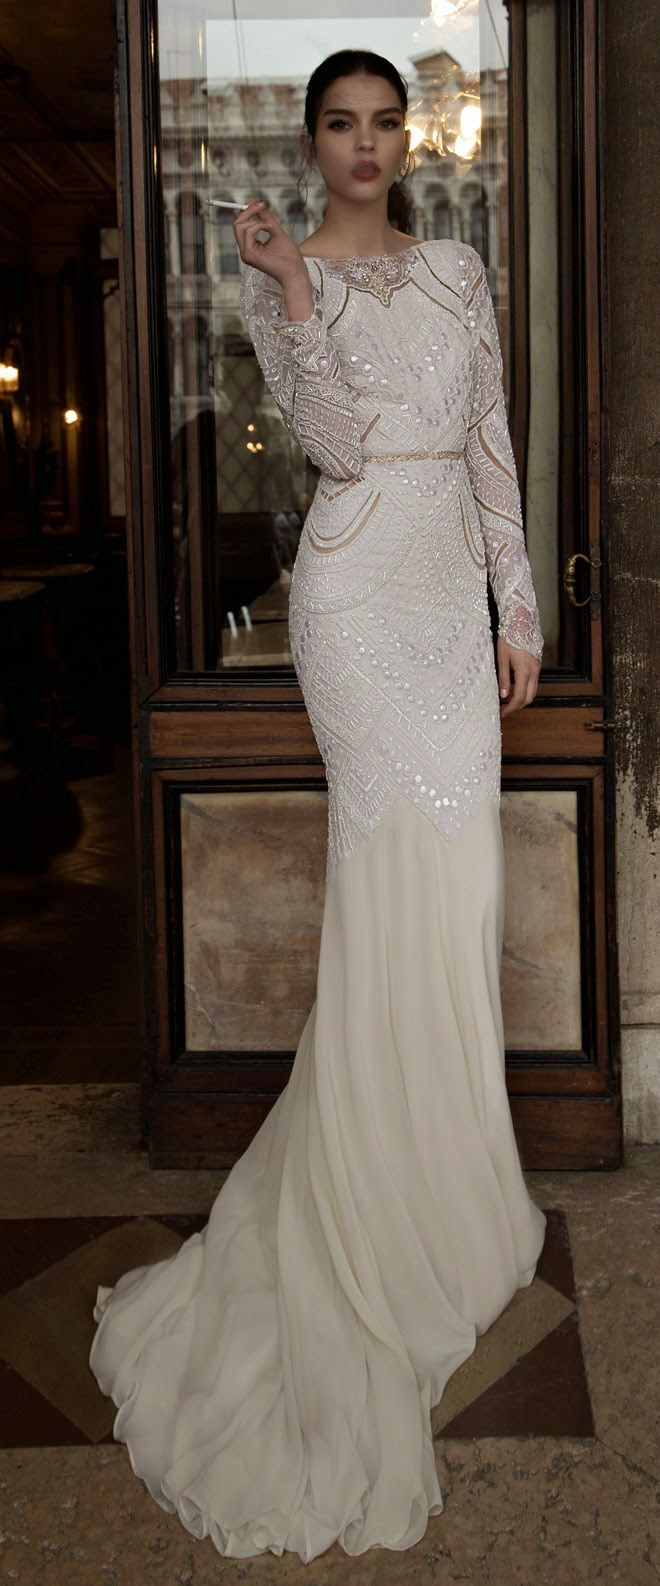 389 Best Long Sleeve Wedding Dresses Images On Pinterest Bridesmaid Gowns And Bridal